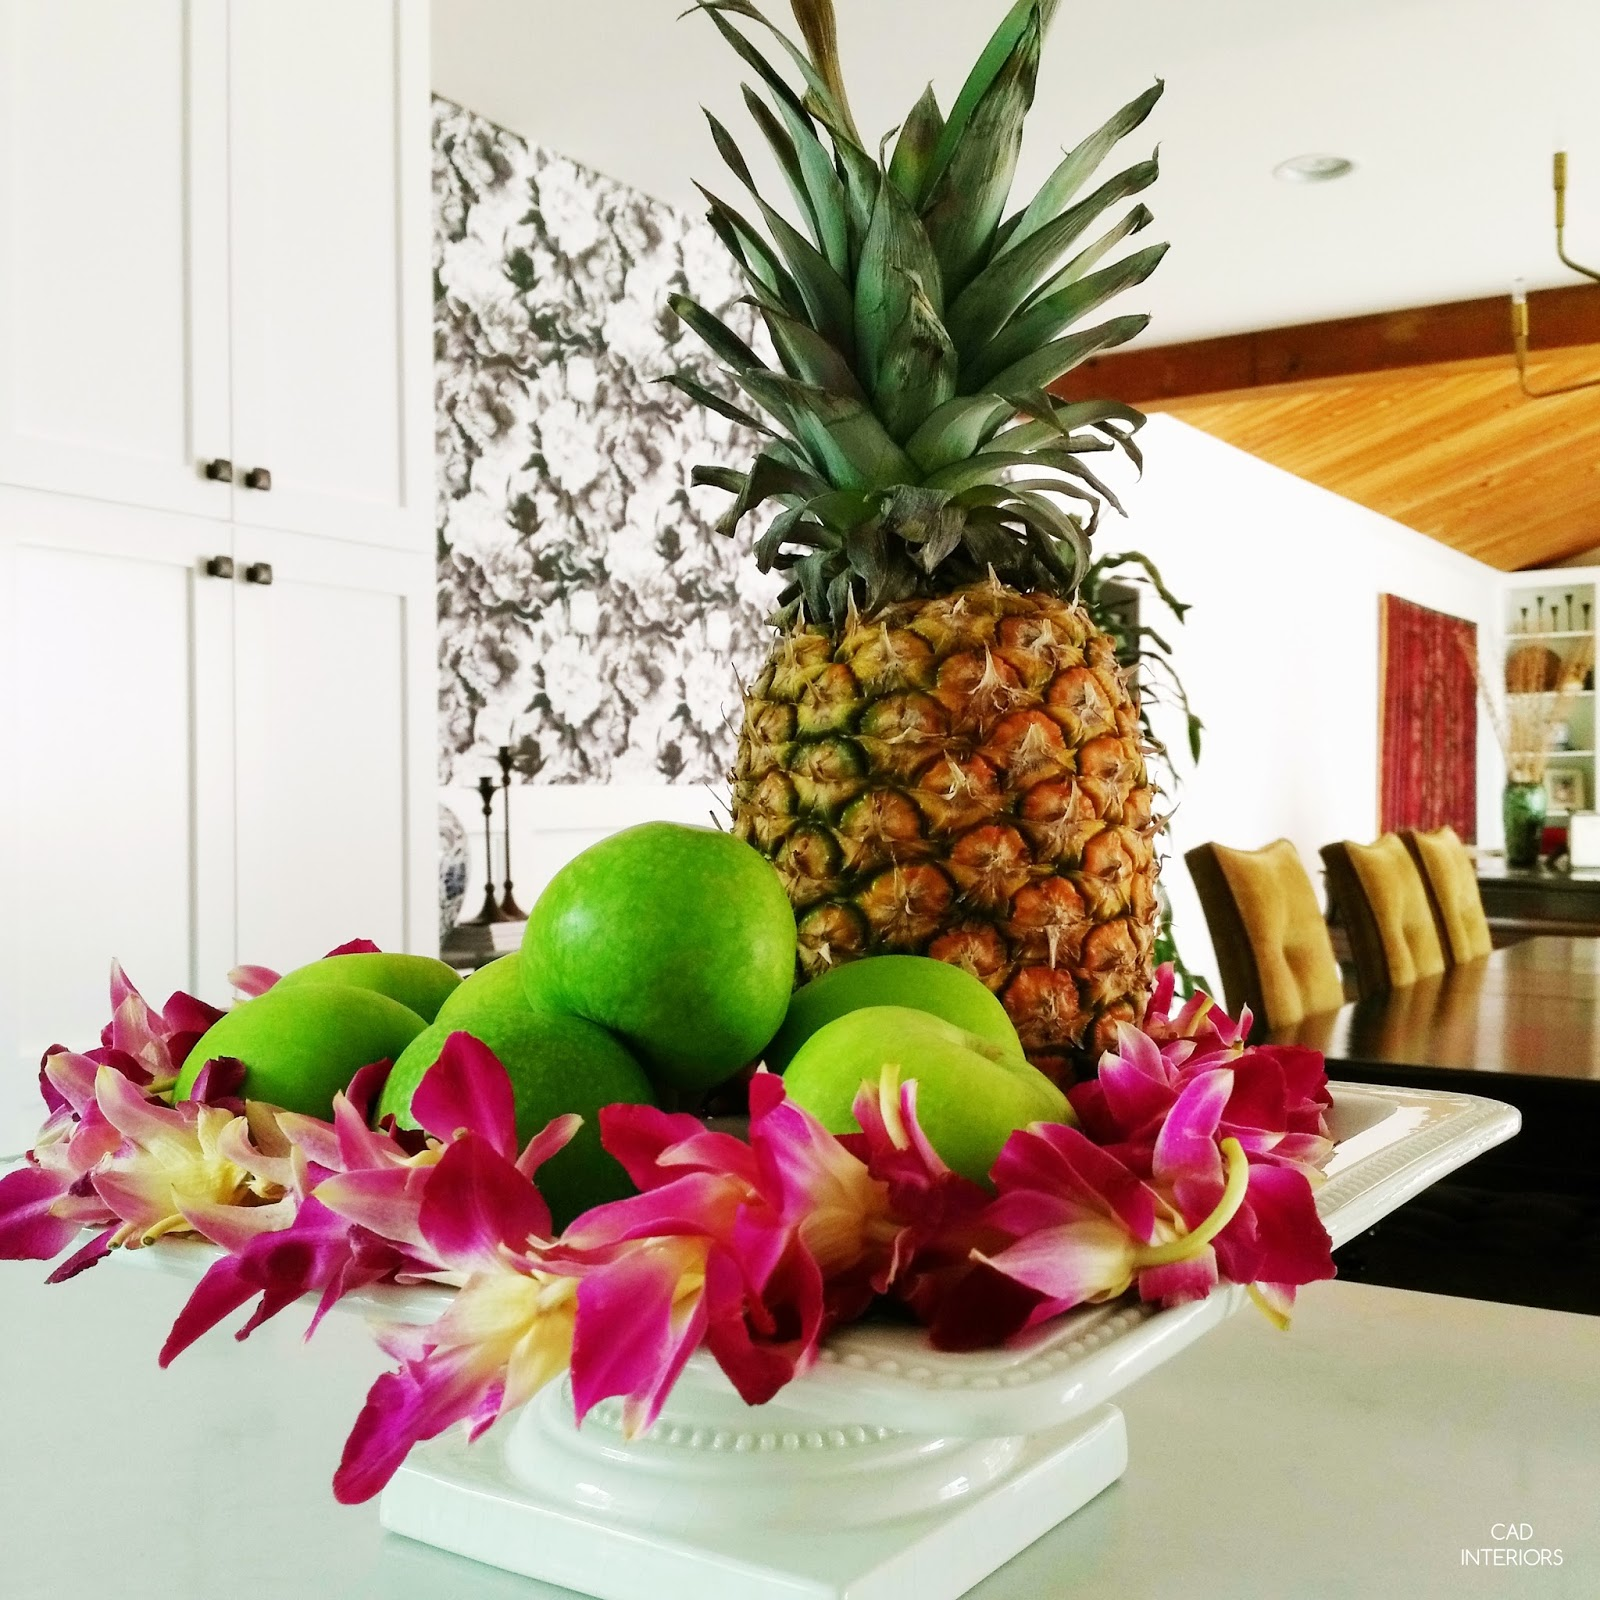 real pineapple apple orchid lei fresh fruit tray edible decoration